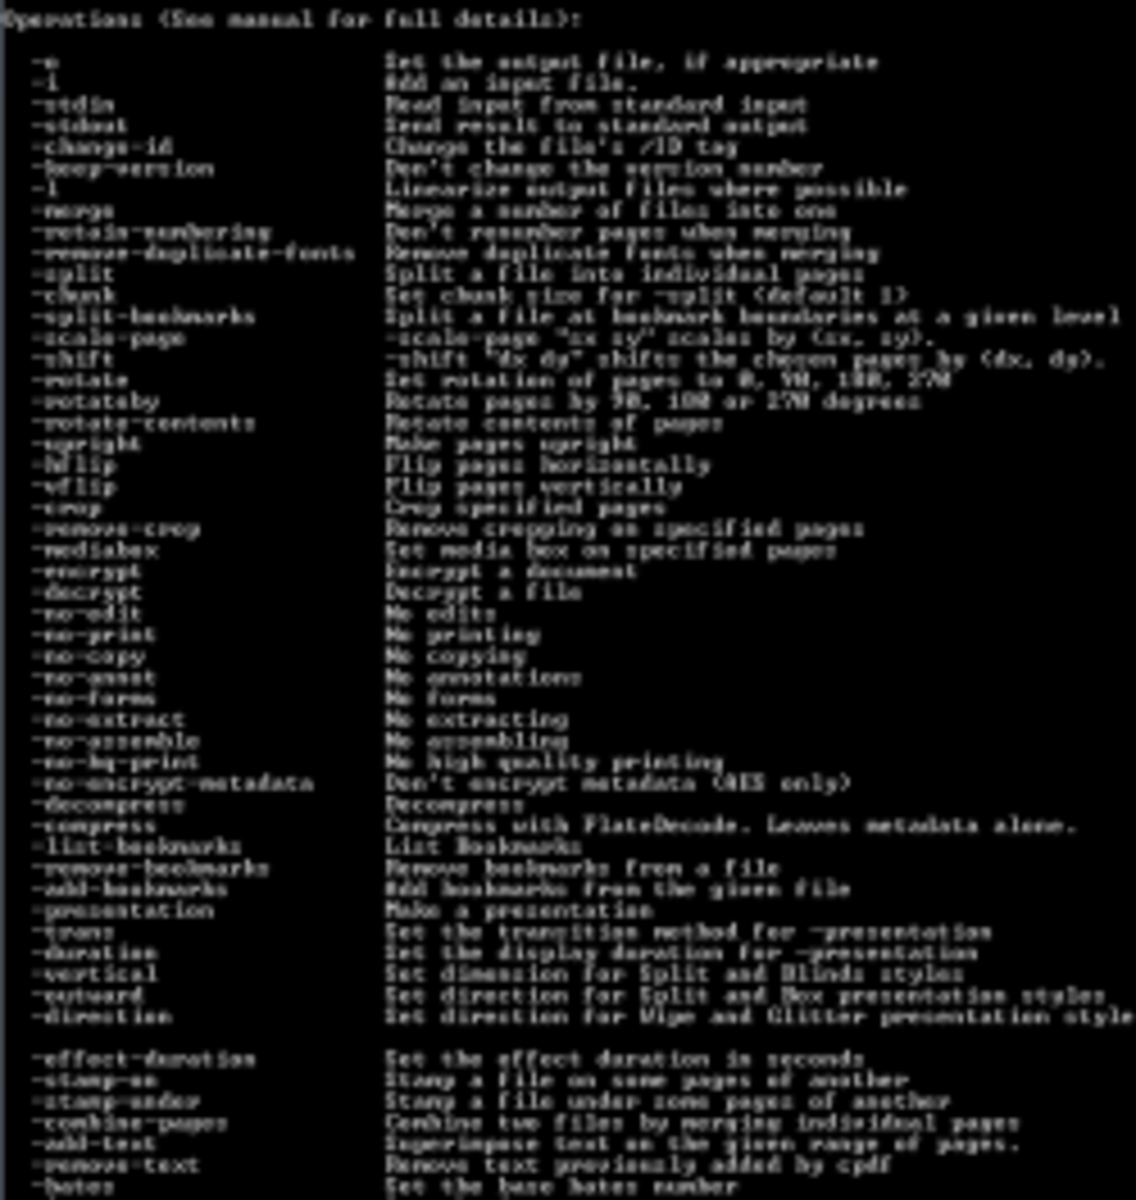 MS-DOS Command Prompt Command Lines